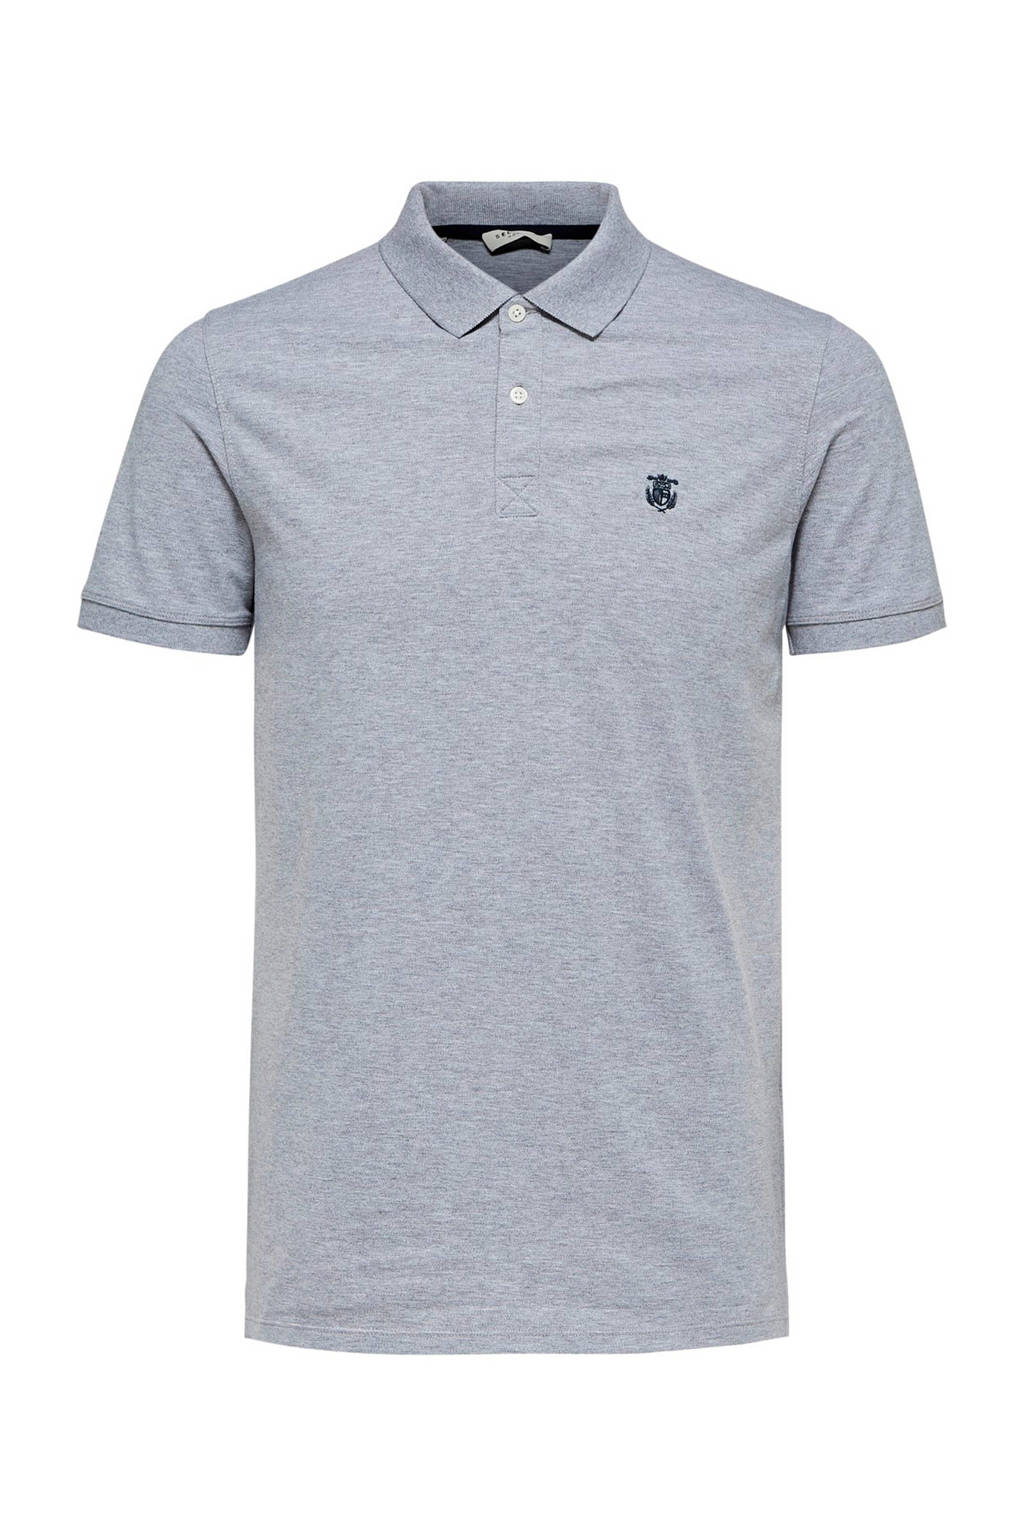 Selected Homme +Fit regular fit polo grijs, Grijs